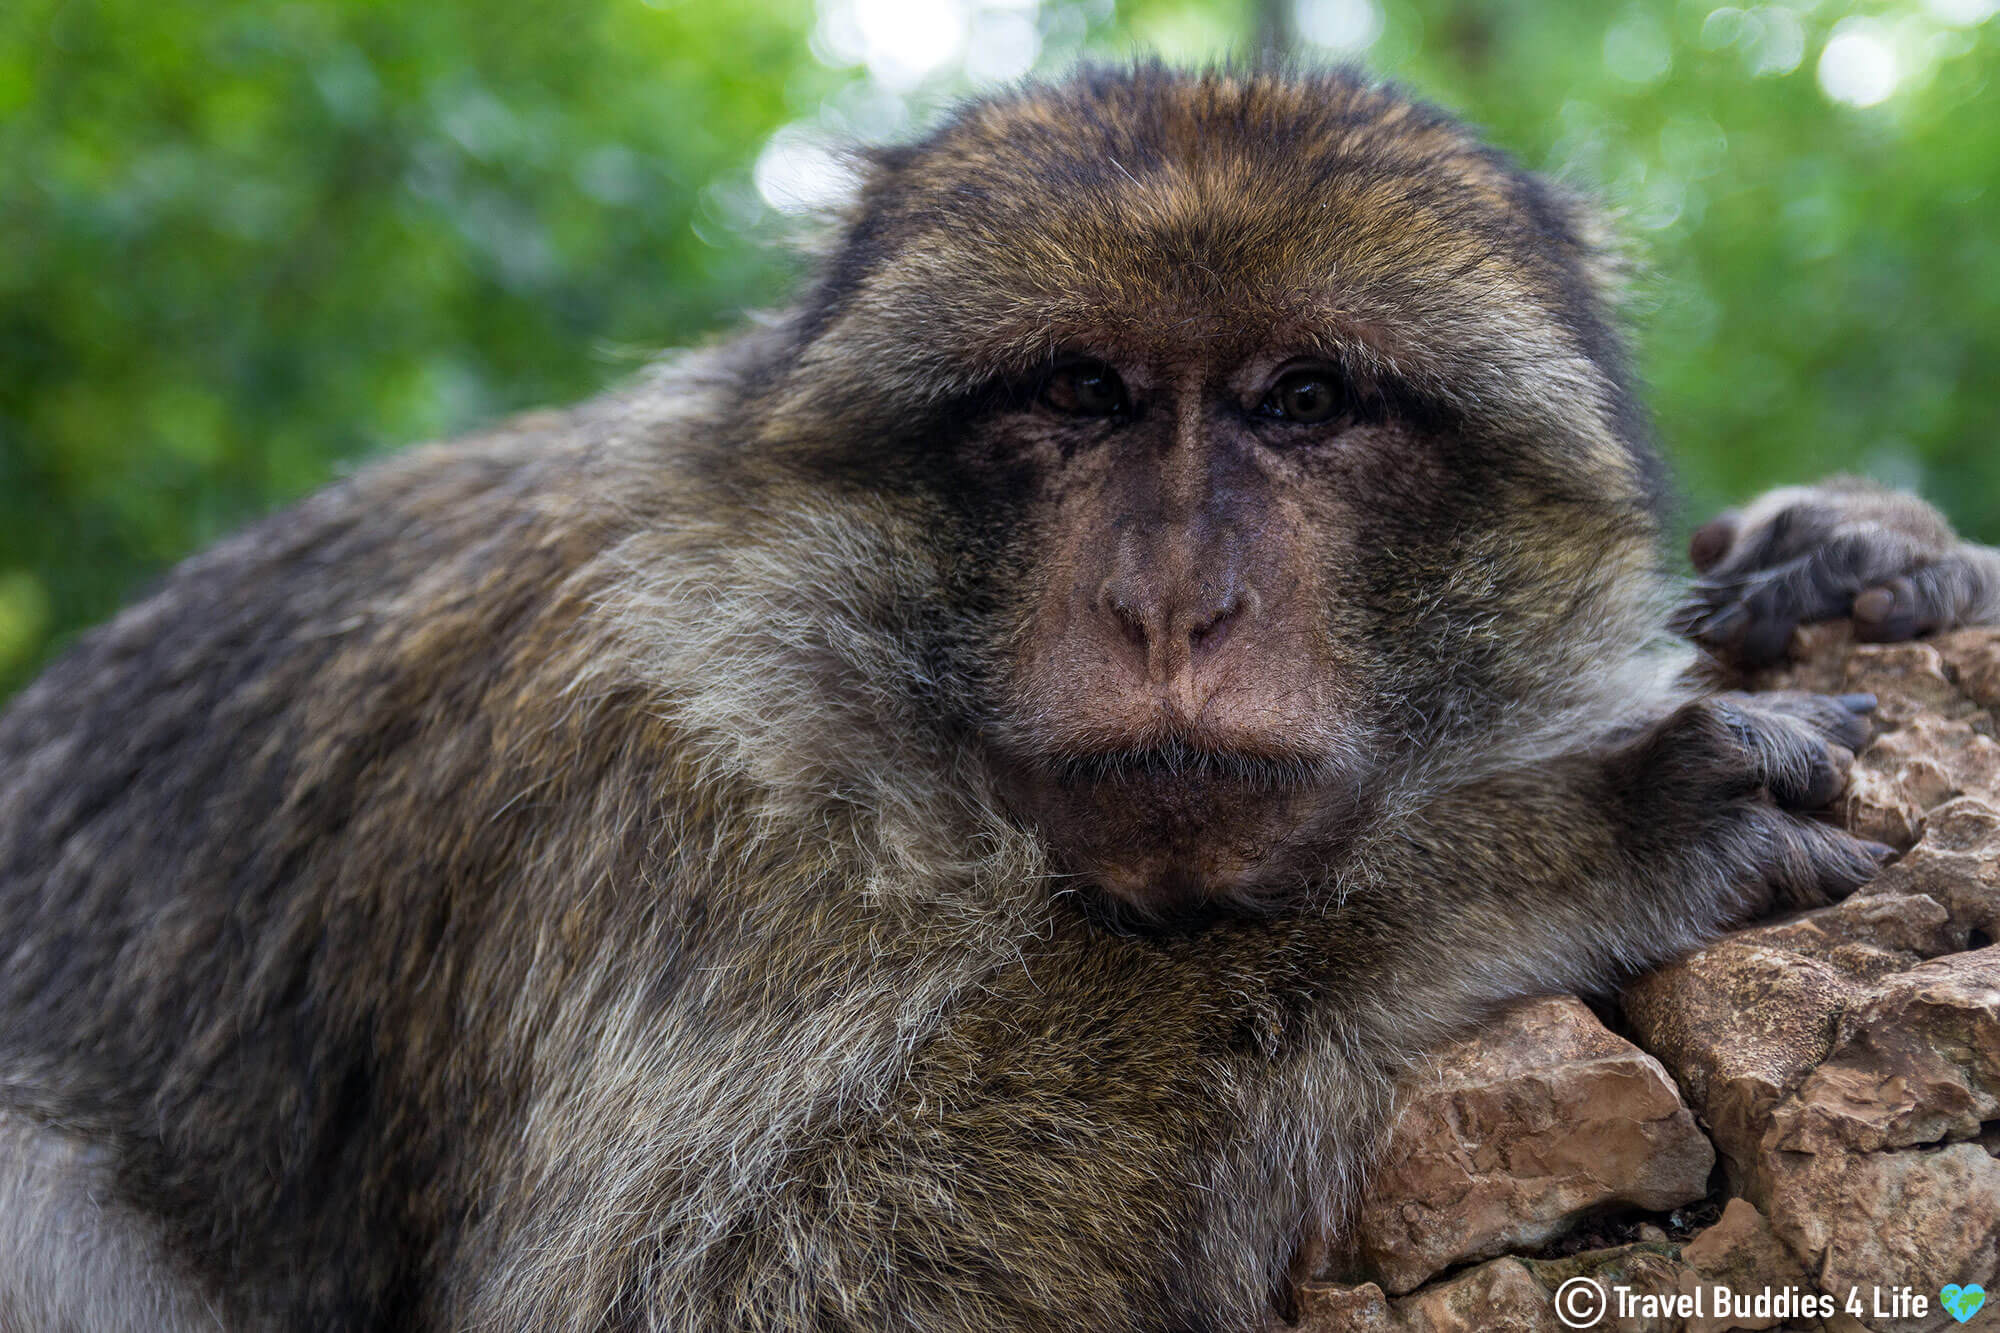 Monkeying around with Barbary Macaques | Travel Buddies for Life